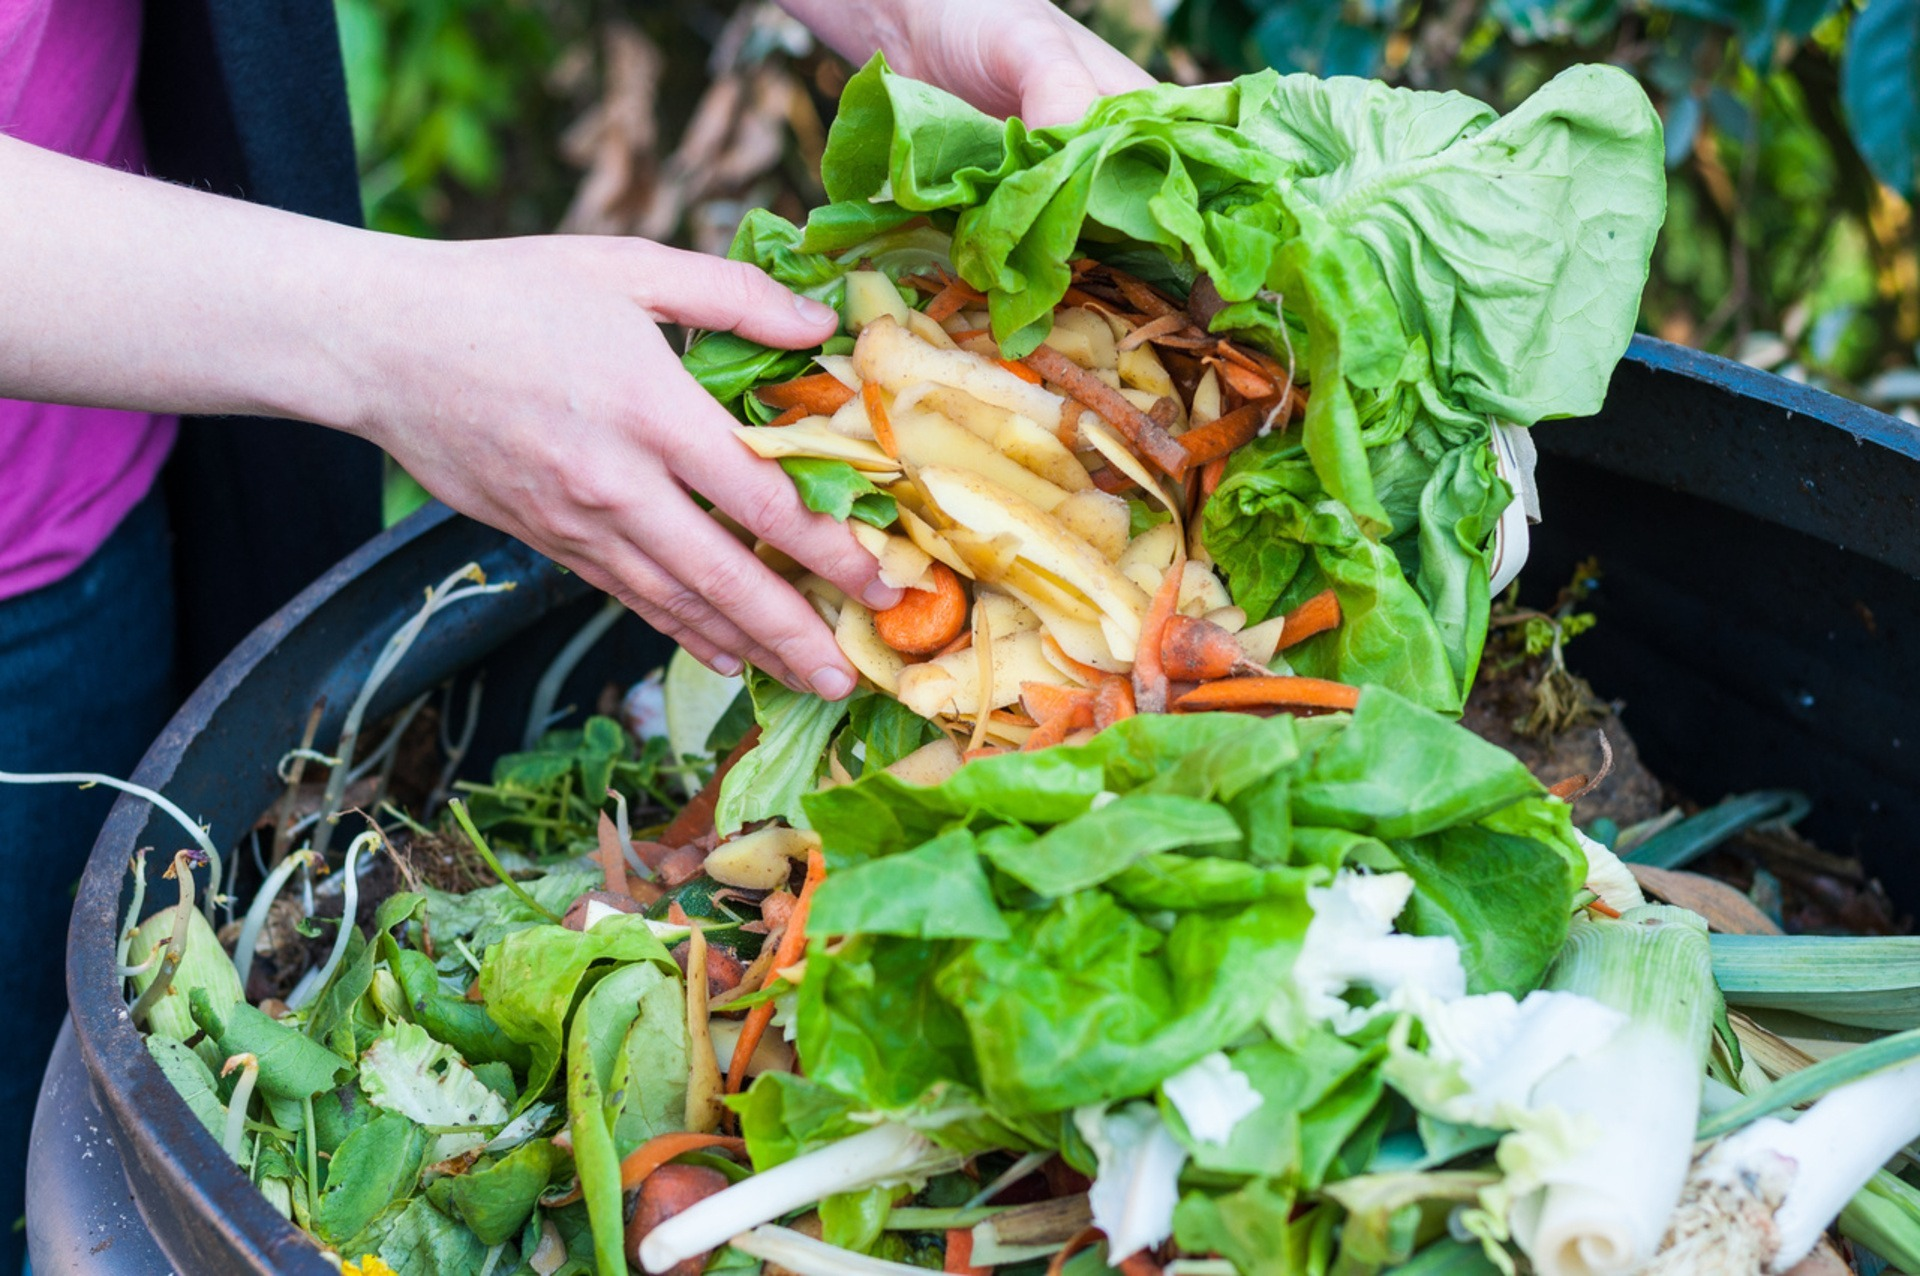 composting household food waste